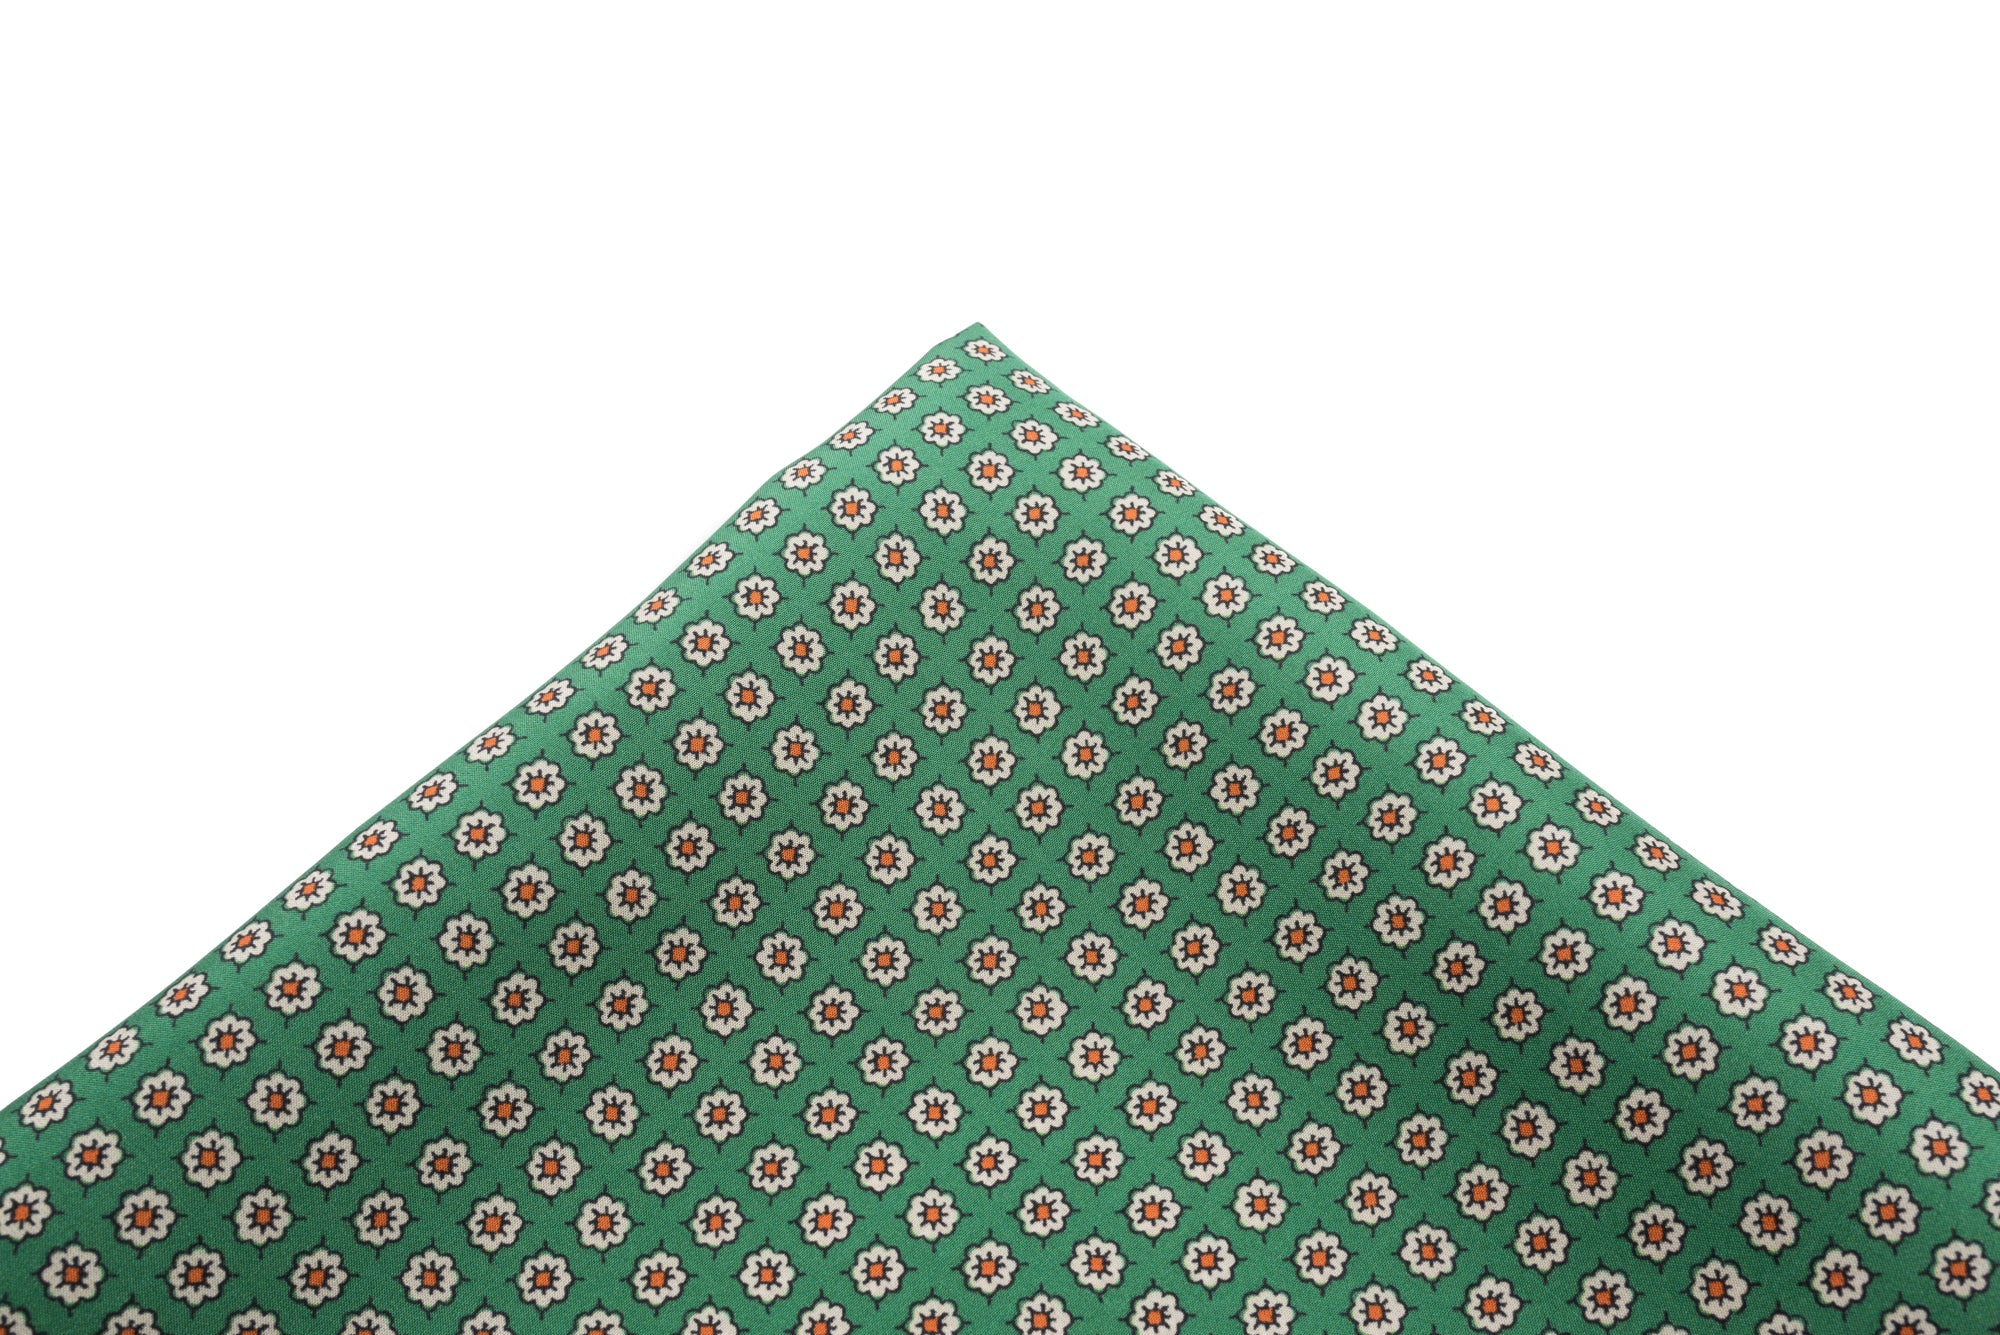 Pocket Square Green - Small Floral Neat